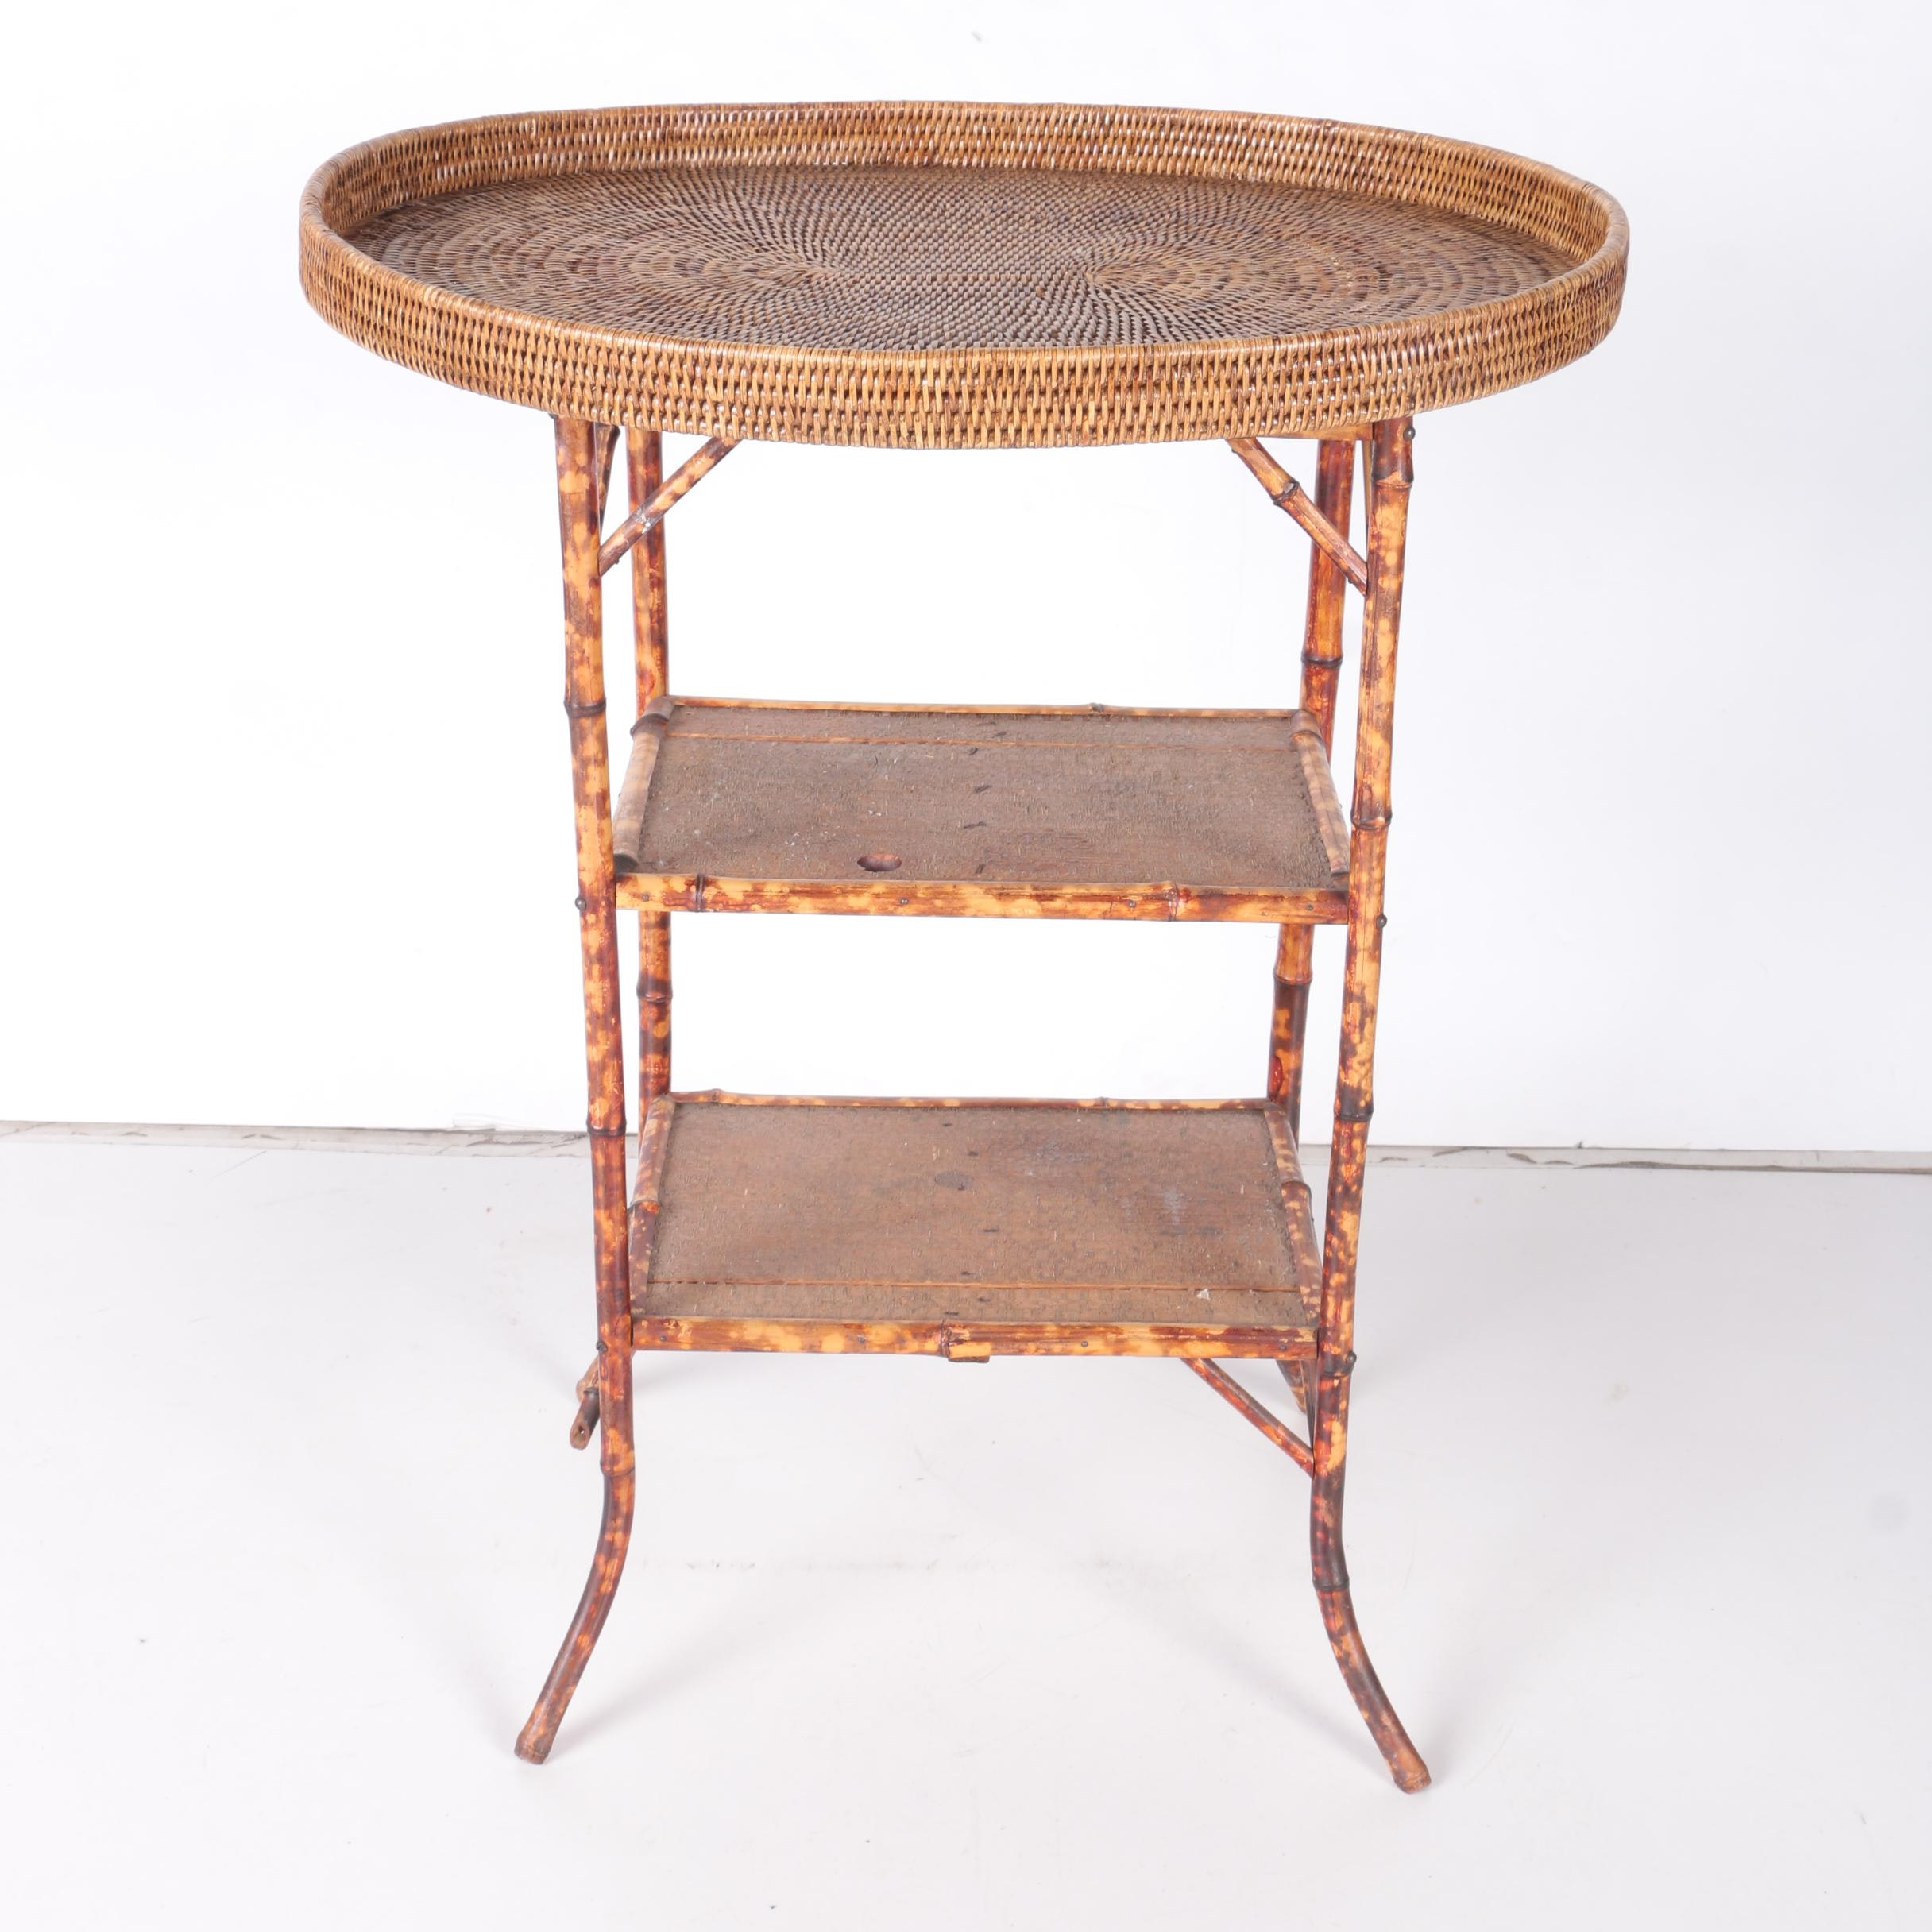 Painted Rattan Side Table with Tray Top